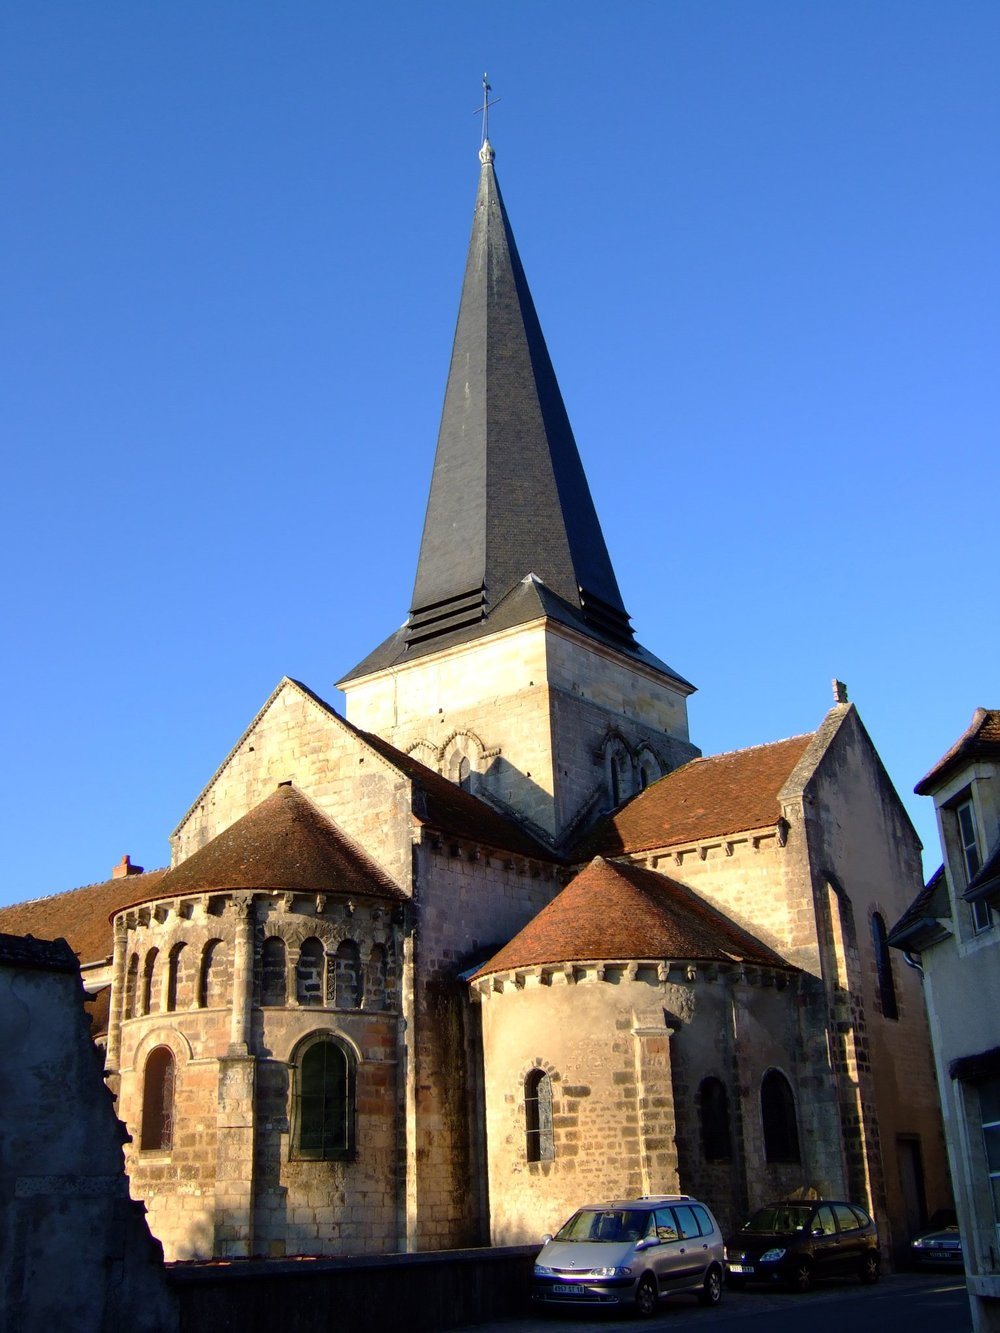 The mayor of the central French town of Saint-Amand-Montrond (pictured), Thierry Vincon, is leading a delegation to Israel of 20 Frenchto commemorate Yom HaShoah. Credit: Wikimedia Commons.